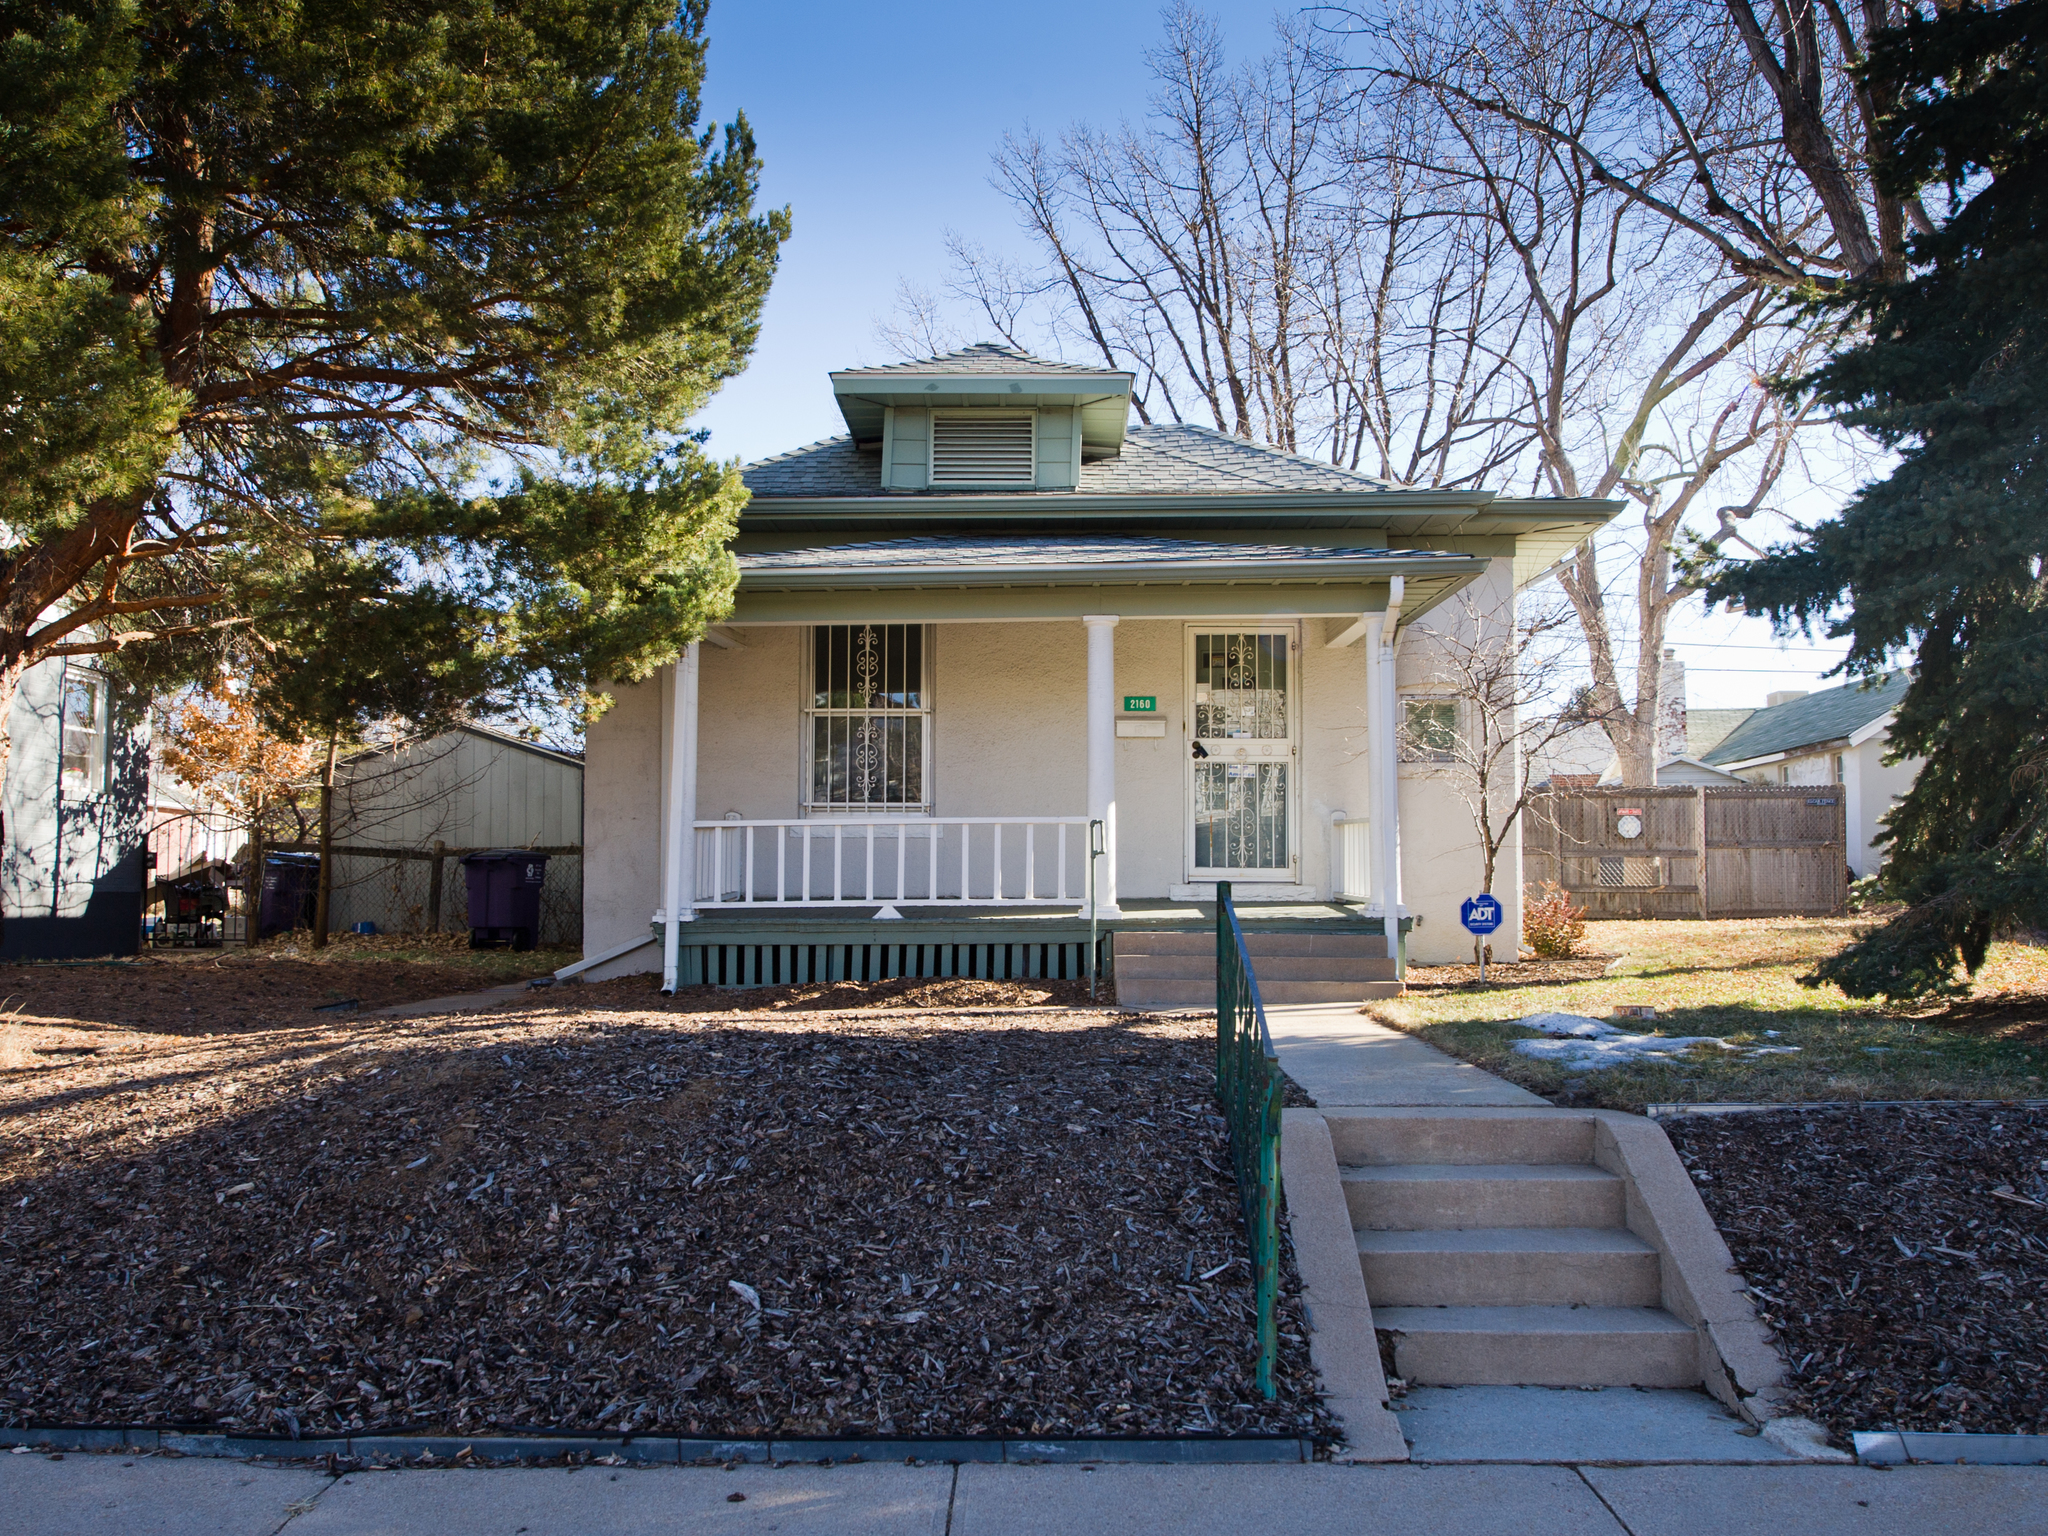 Single Family Home for Sale at Conveniently located near shops! 2160 South Grant Street Platt Park, Denver, Colorado 80210 United States